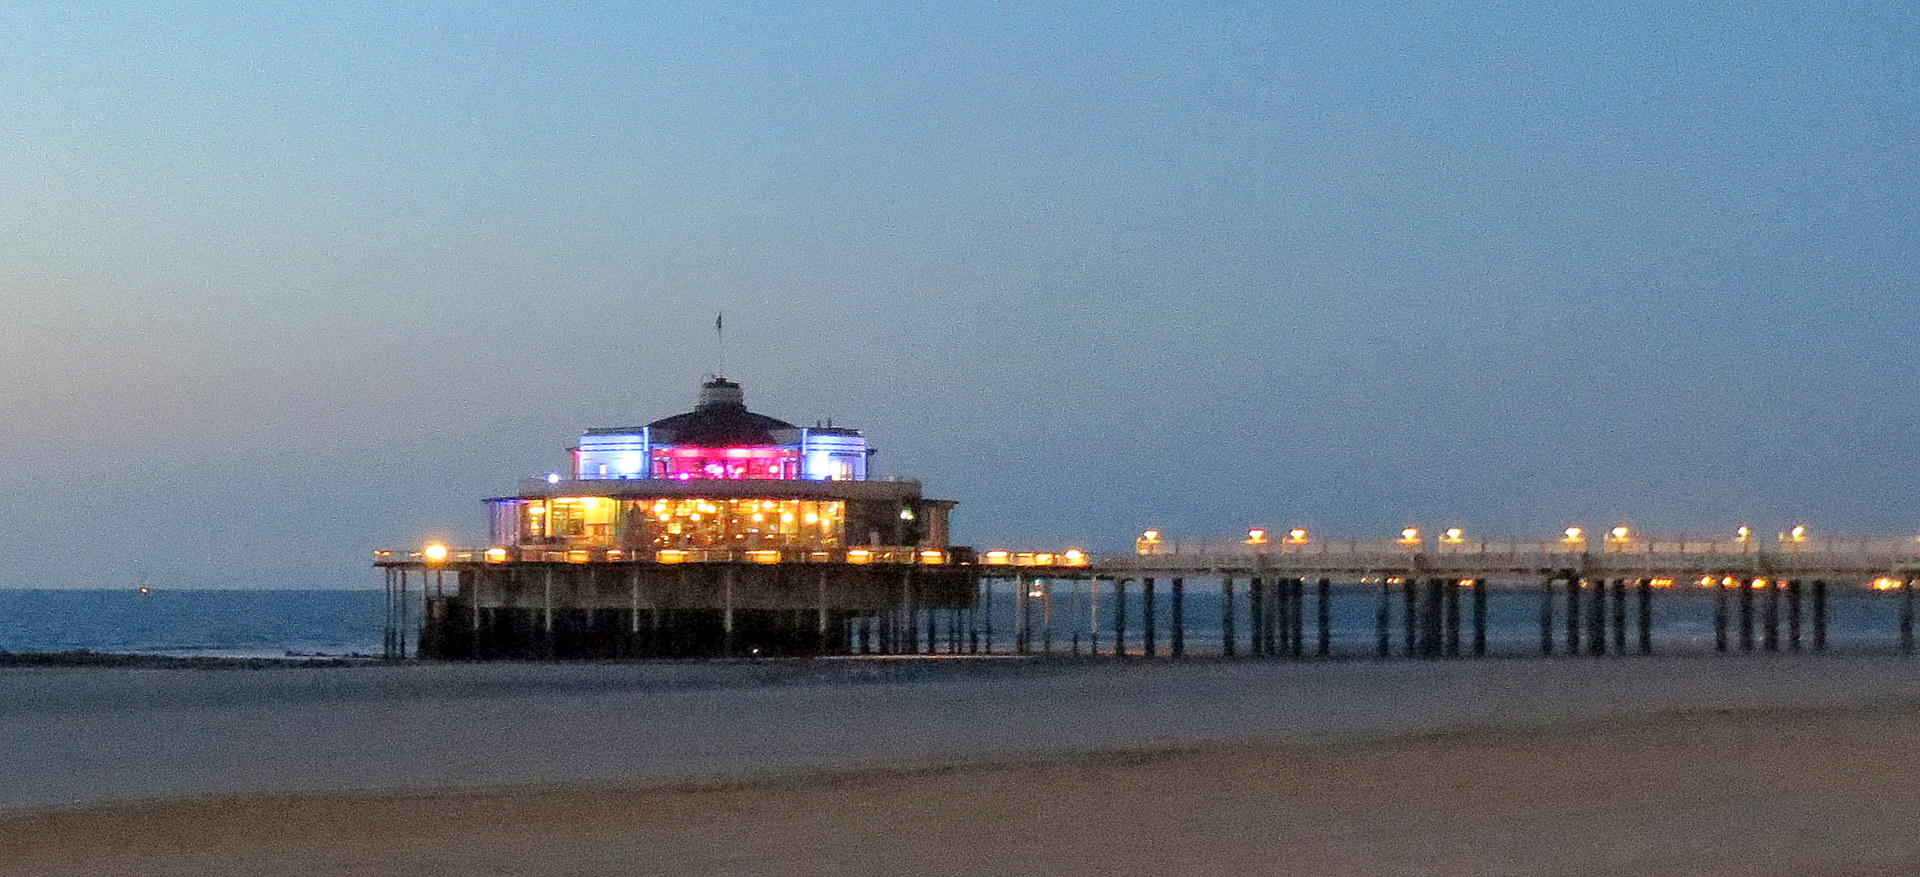 Le Pier by night